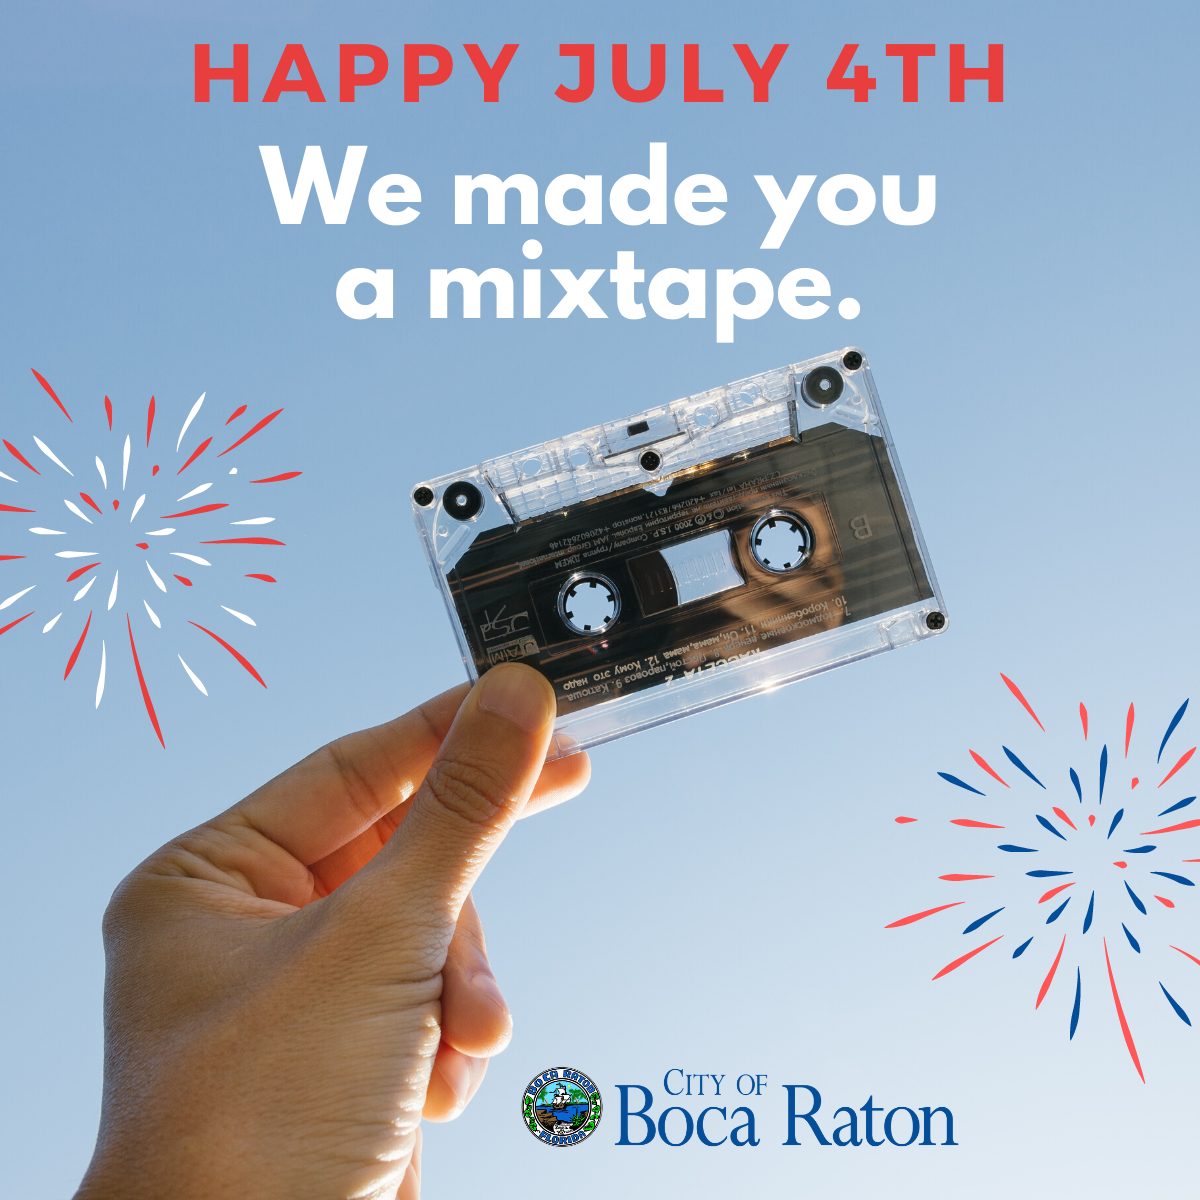 Happy July 4th. We made you a mix tape. City of Boca Raton.